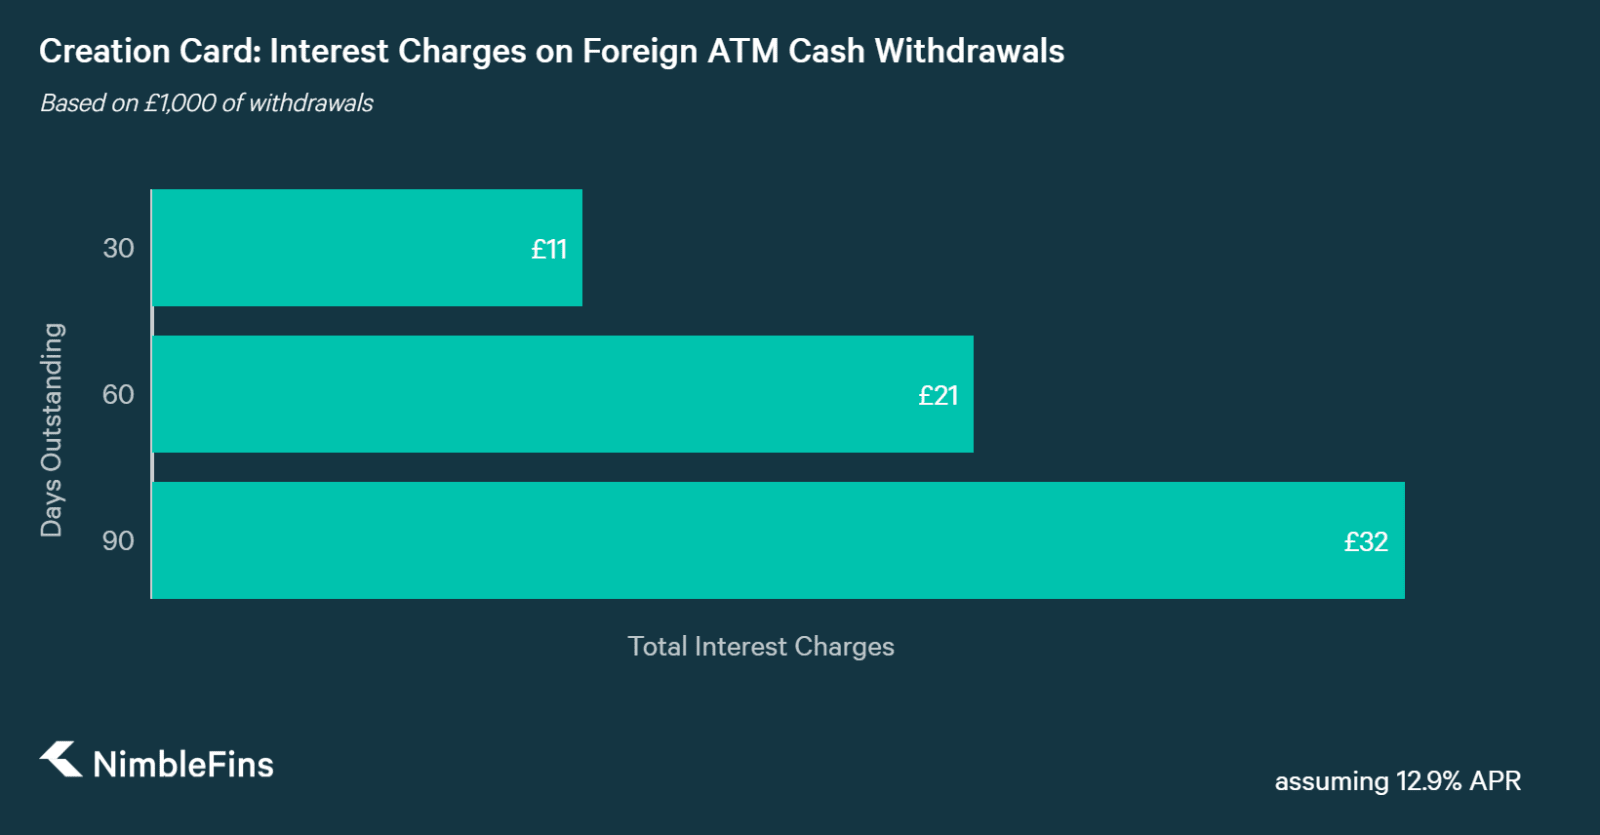 chart showing interest charges on a £1,000 foreign ATM cash withdrawal